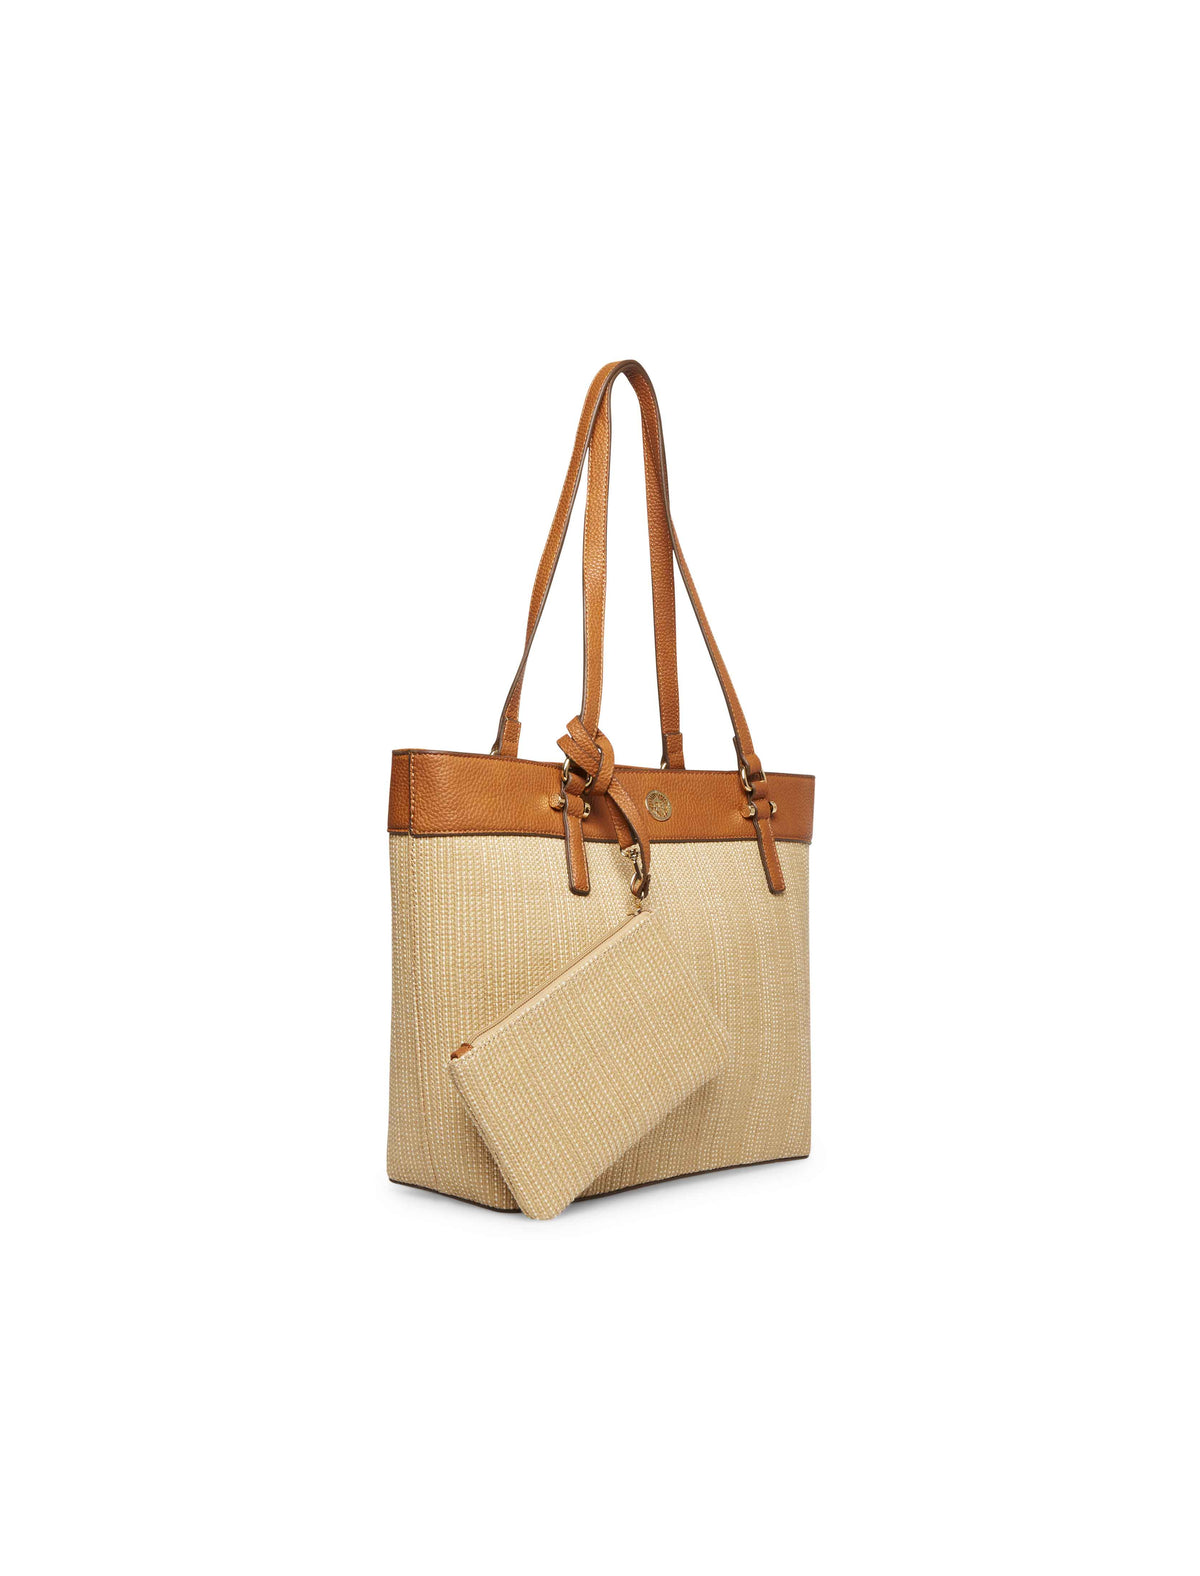 Triple Natural Compartment Tote Bag